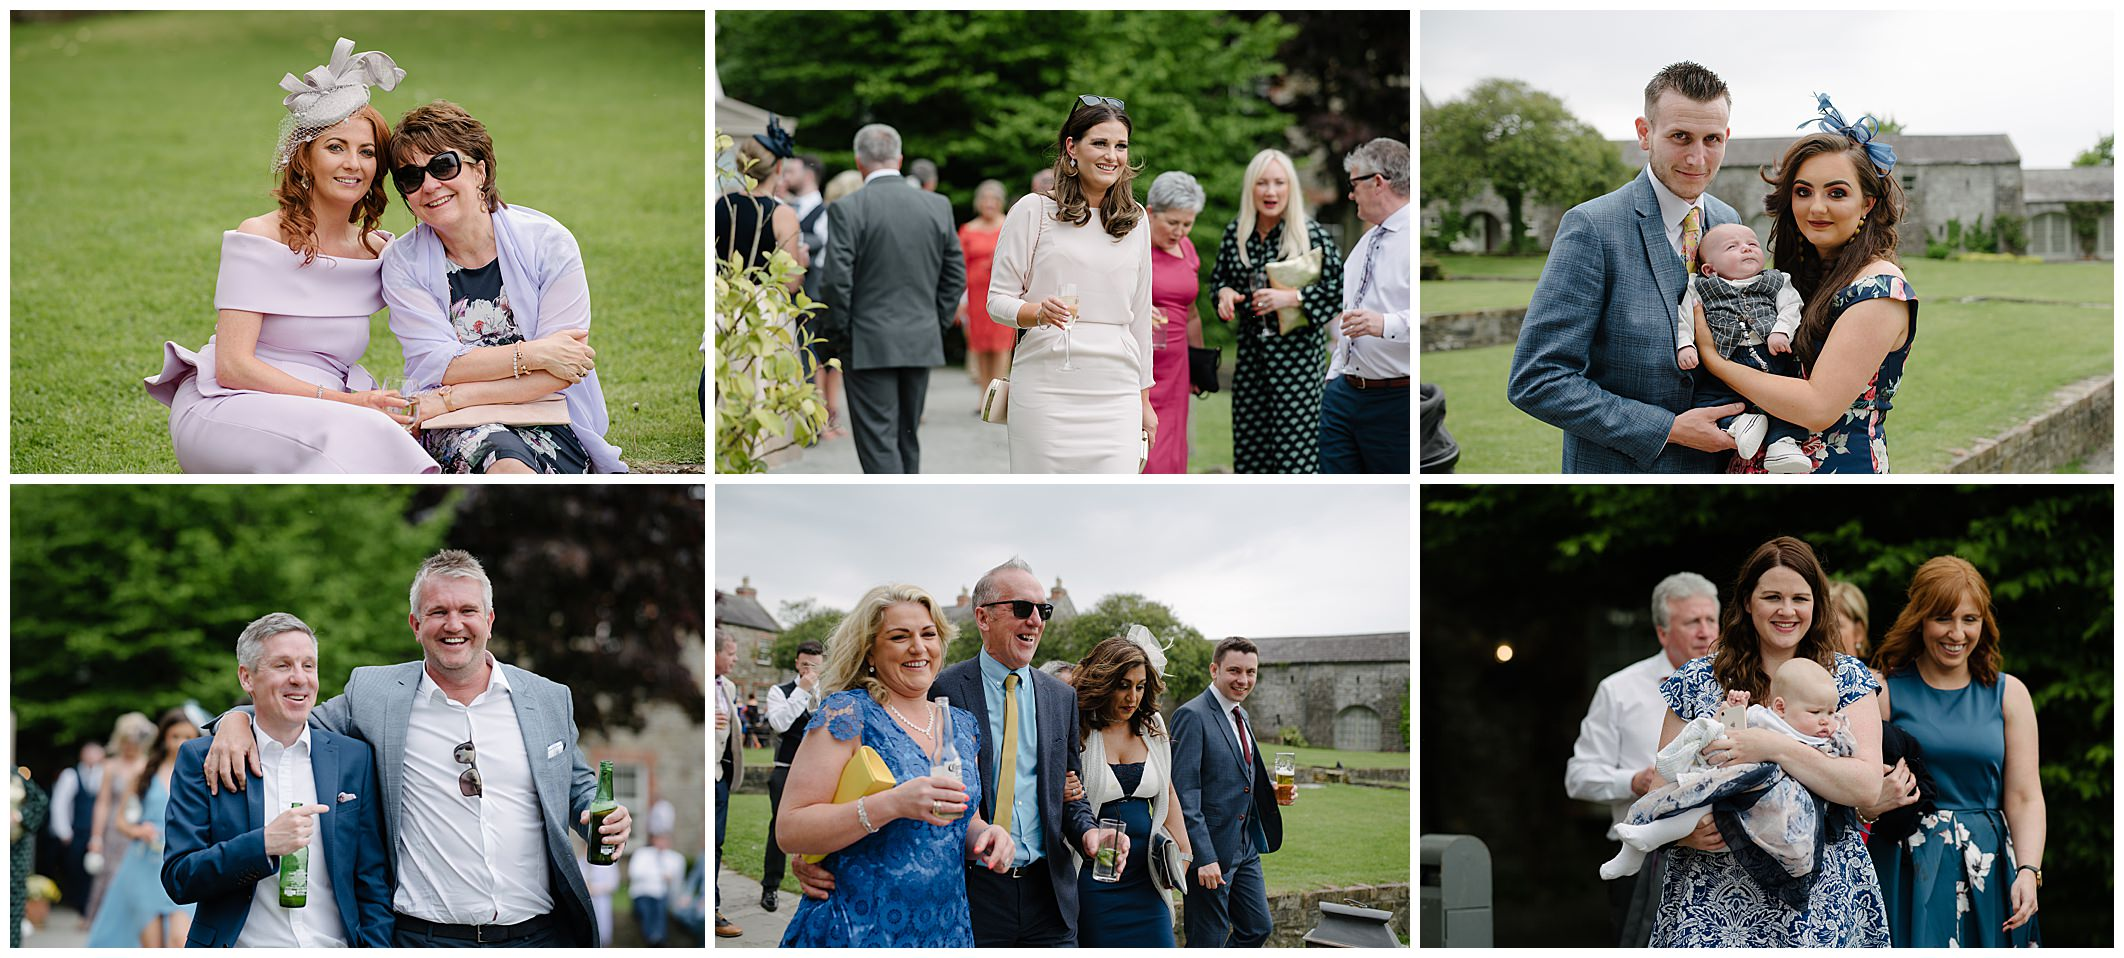 ballymagarvey-village-wedding-jude-browne-photography-133.jpg